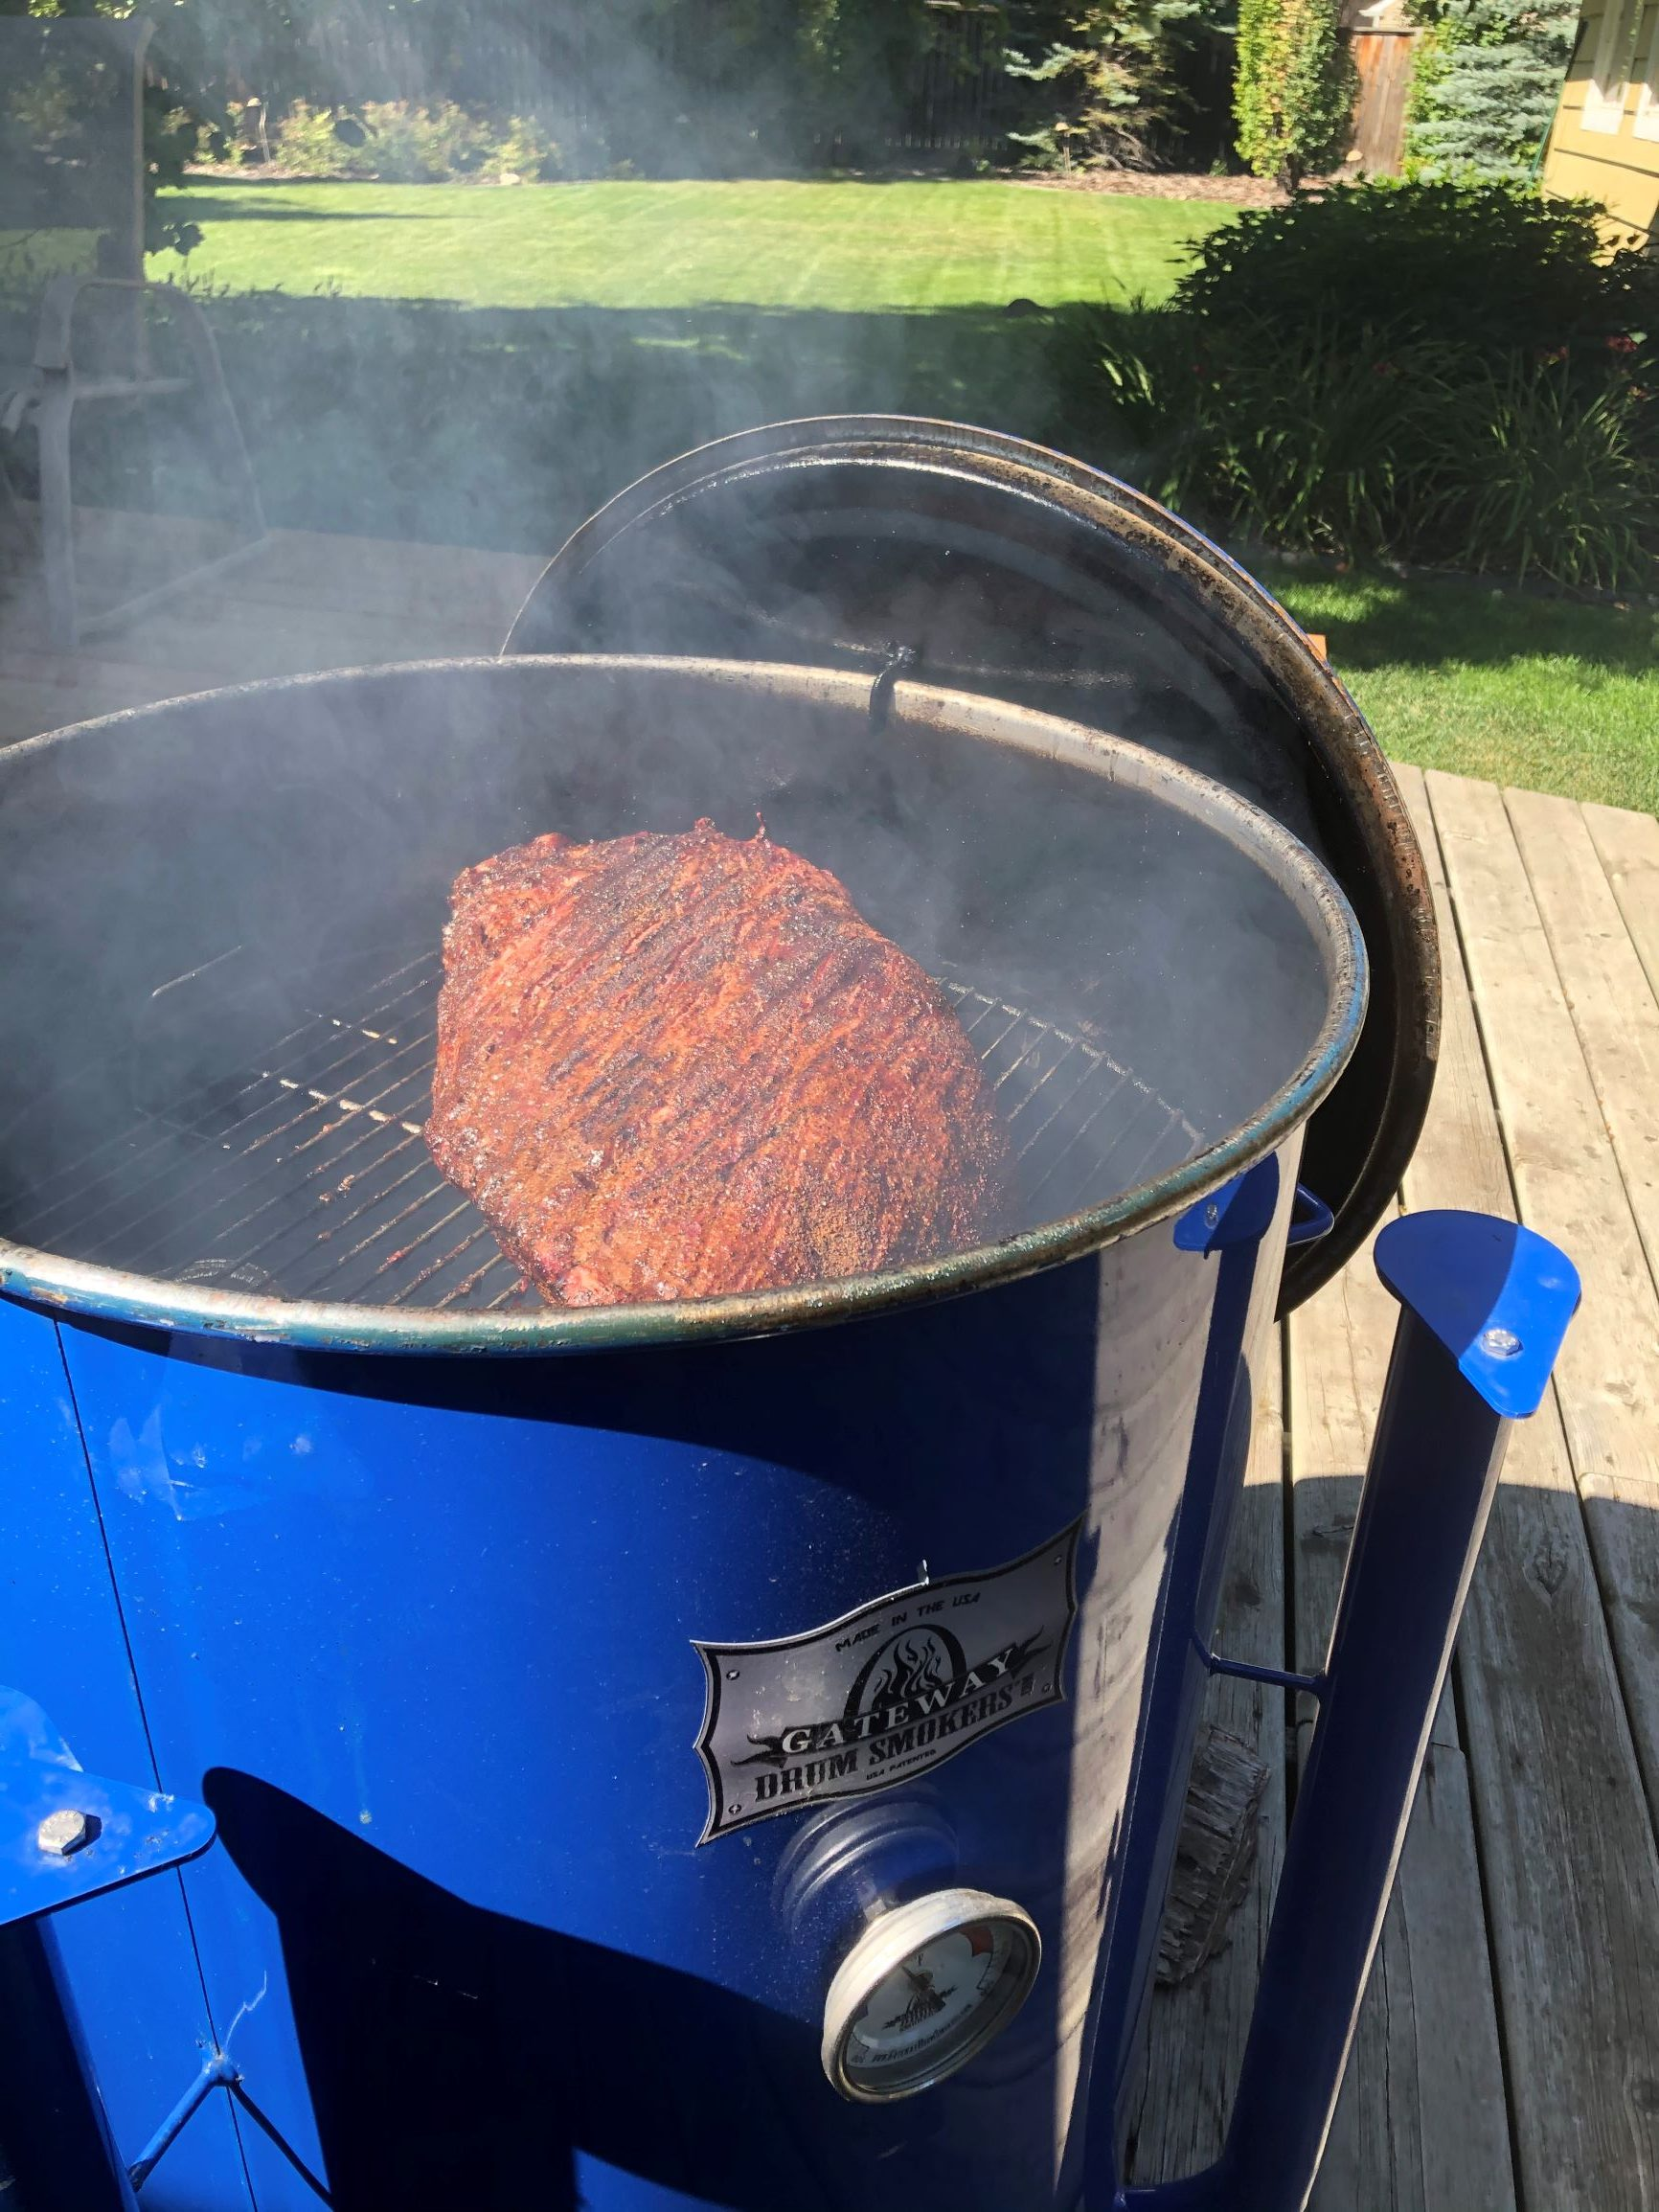 Step by Step Instructions to Smoke/ BBQ/ Cook a Brisket